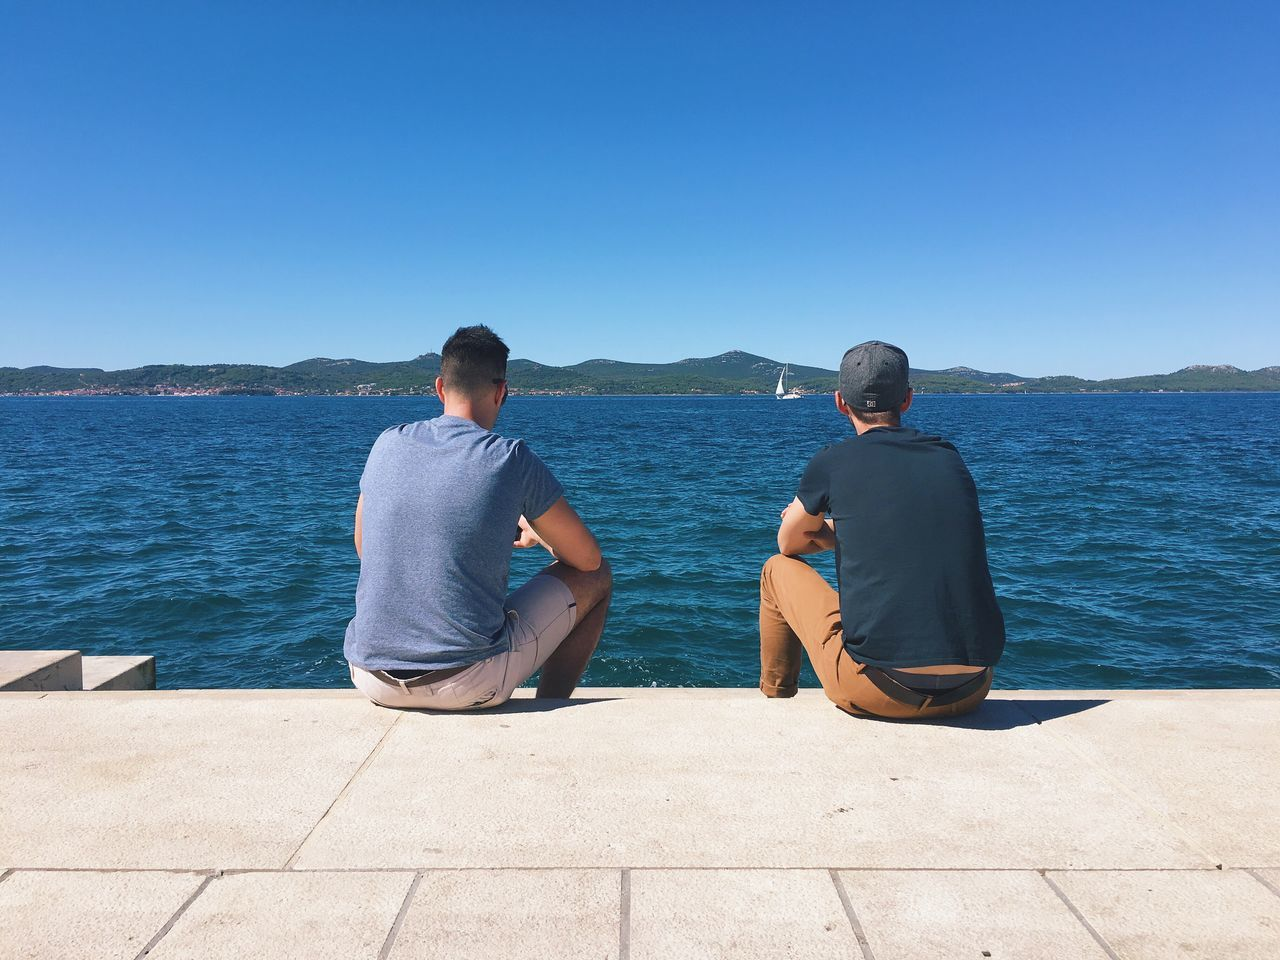 Water Sitting Clear Sky Bonding Copy Space Friendship Rear View Men Zadar Croatia